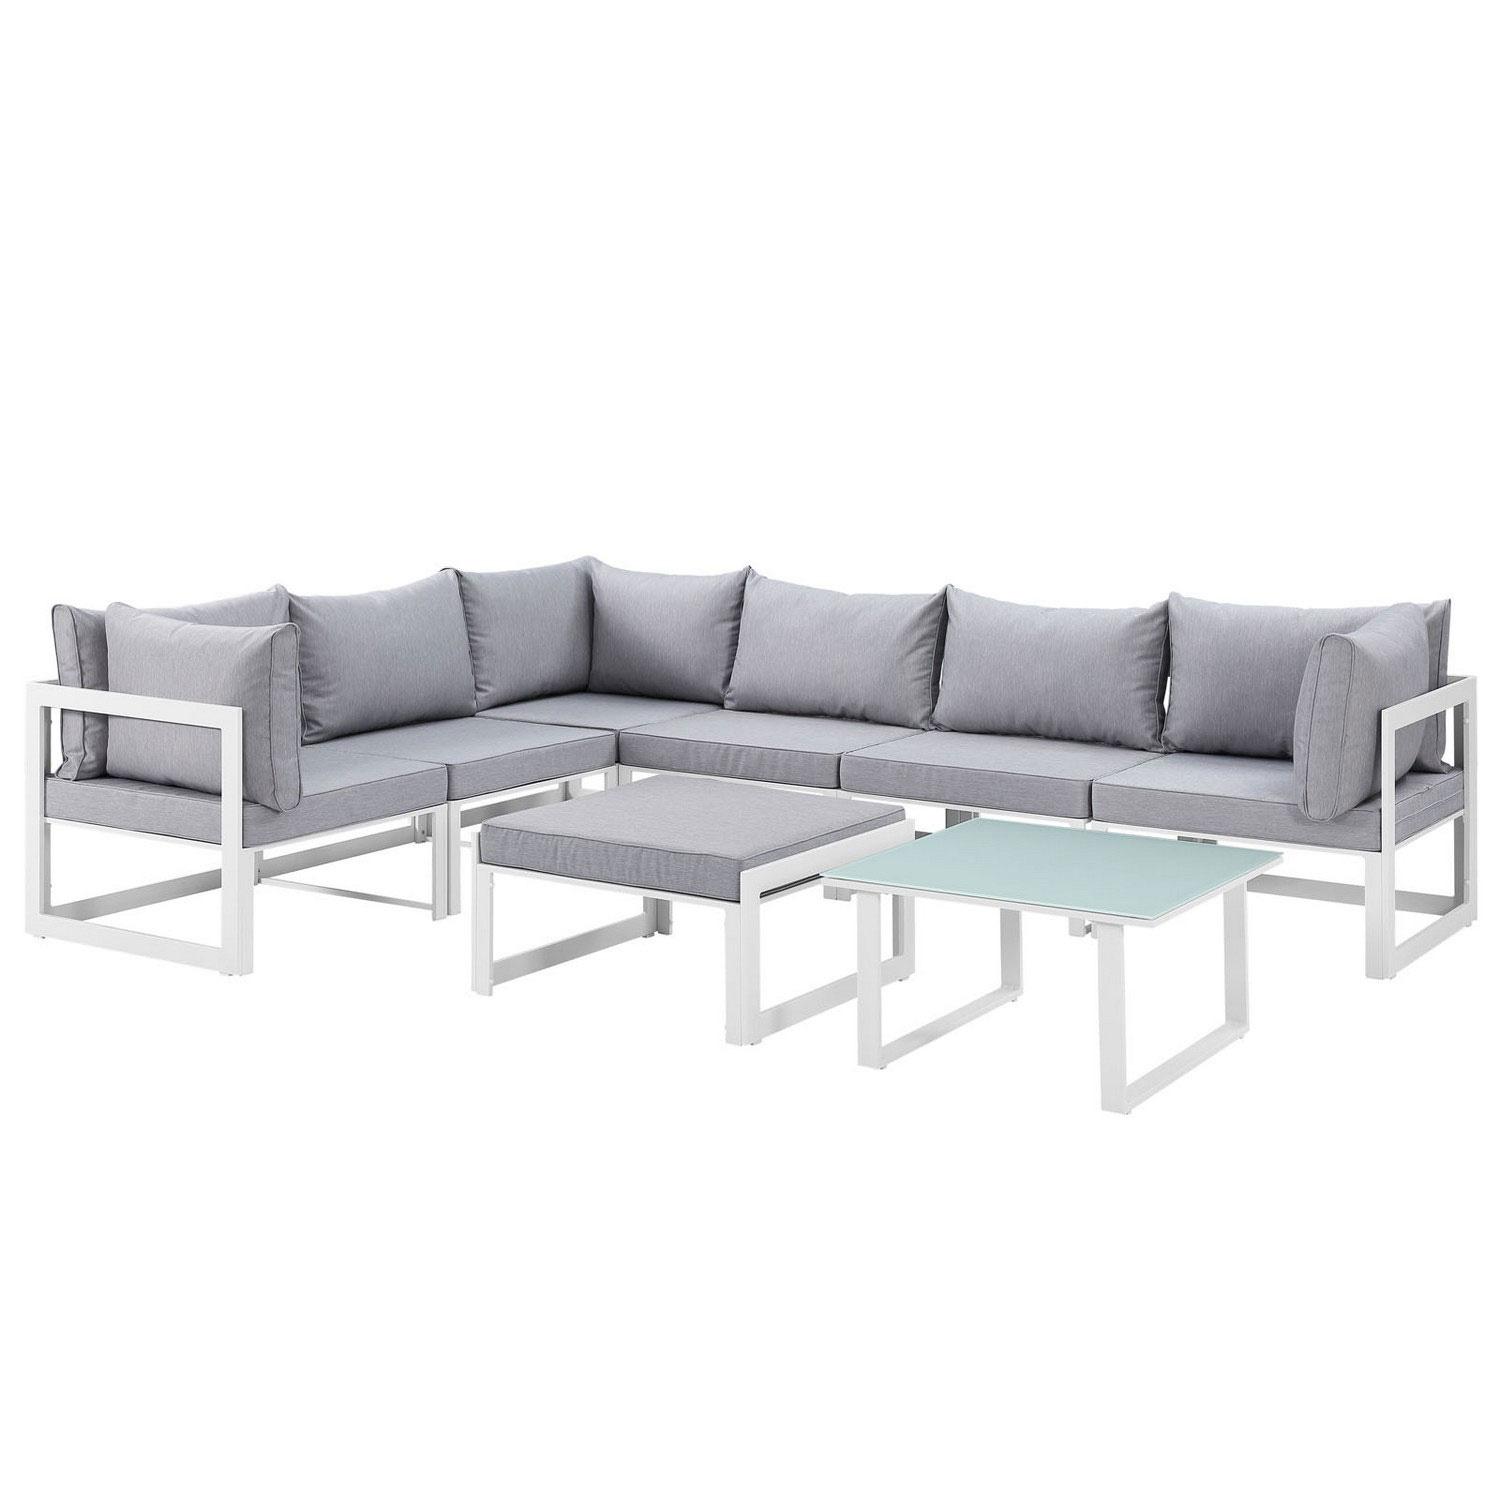 Modway Fortuna 8 Piece Outdoor Patio Sectional Sofa Set - White/Gray